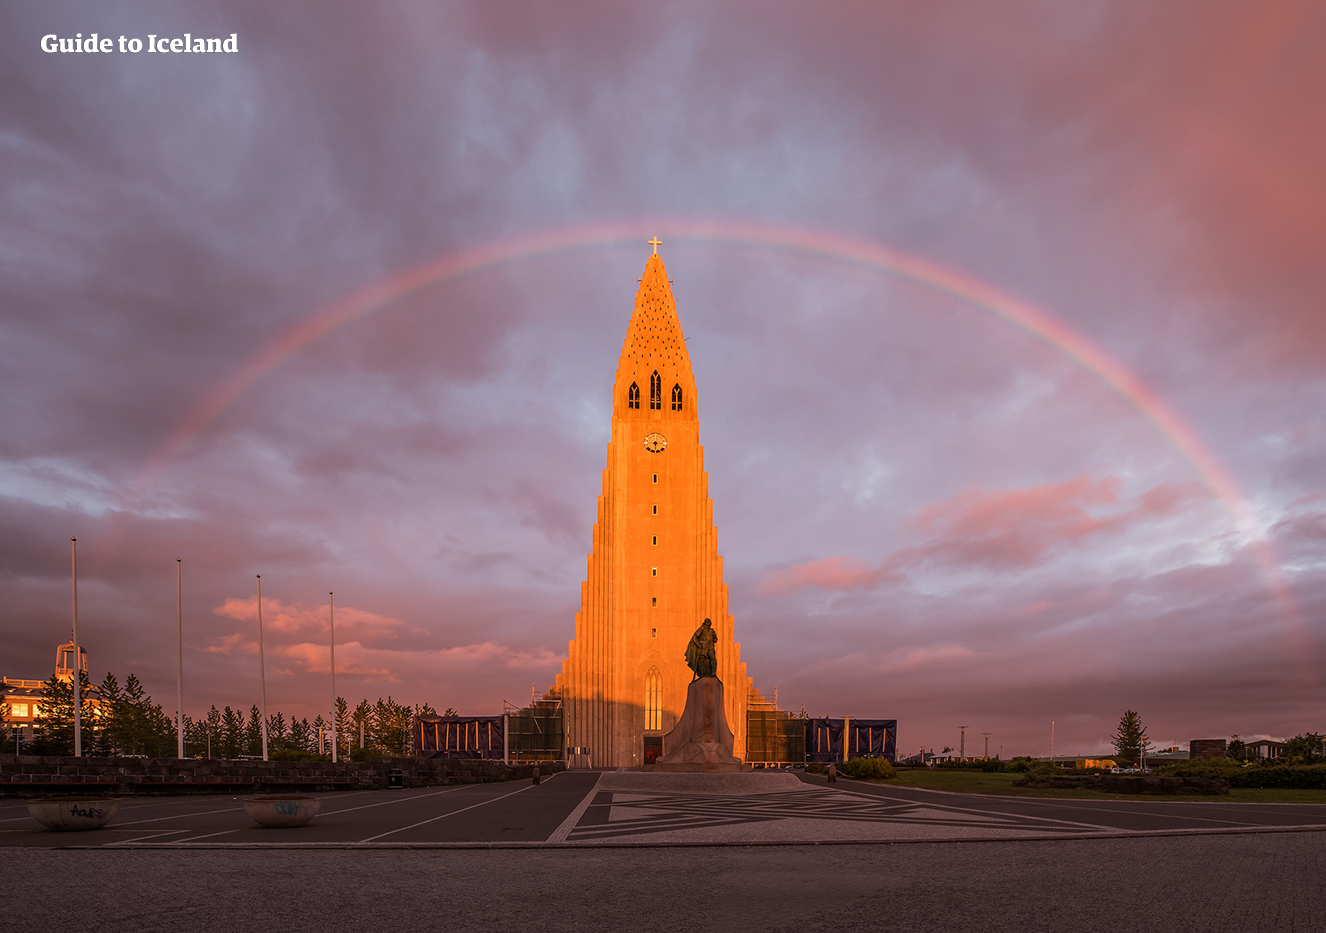 11 Day Summer Package | Ring Road of Iceland with Experienced Local Guide - day 1